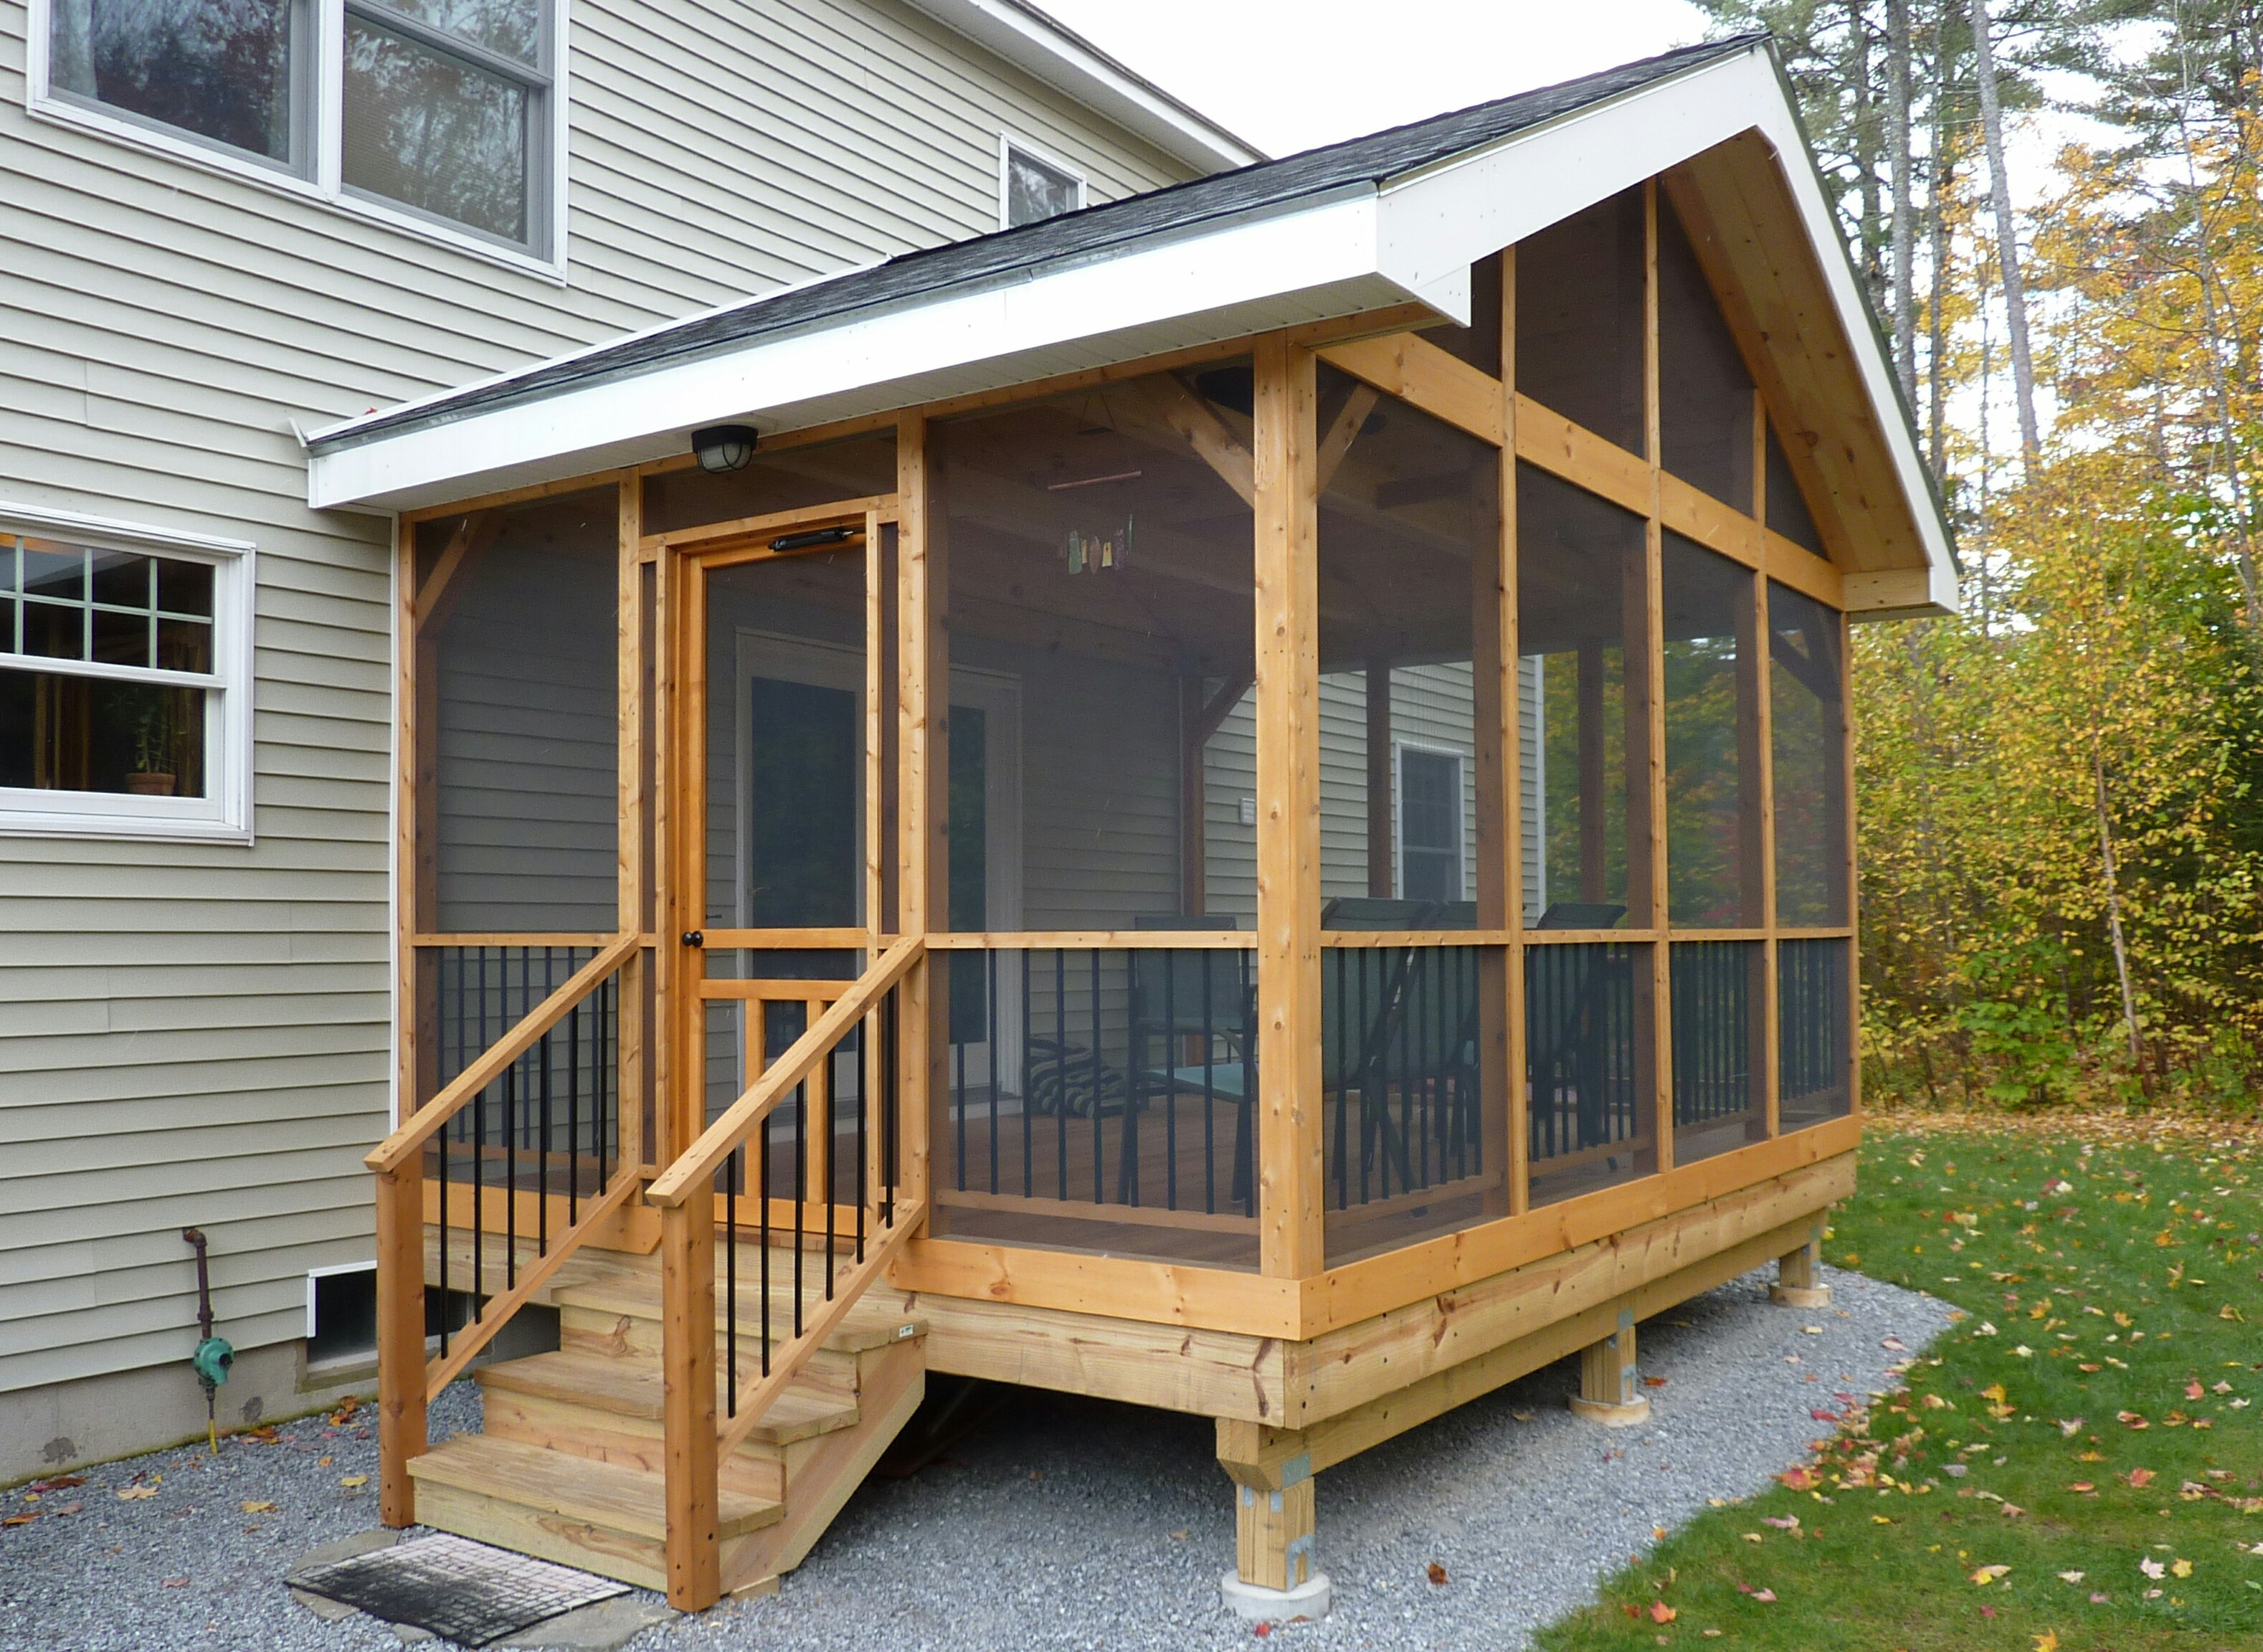 Best ideas about DIY Screened In Porch . Save or Pin 15 DIY Screened In Porch Learn how to screen in a porch Now.